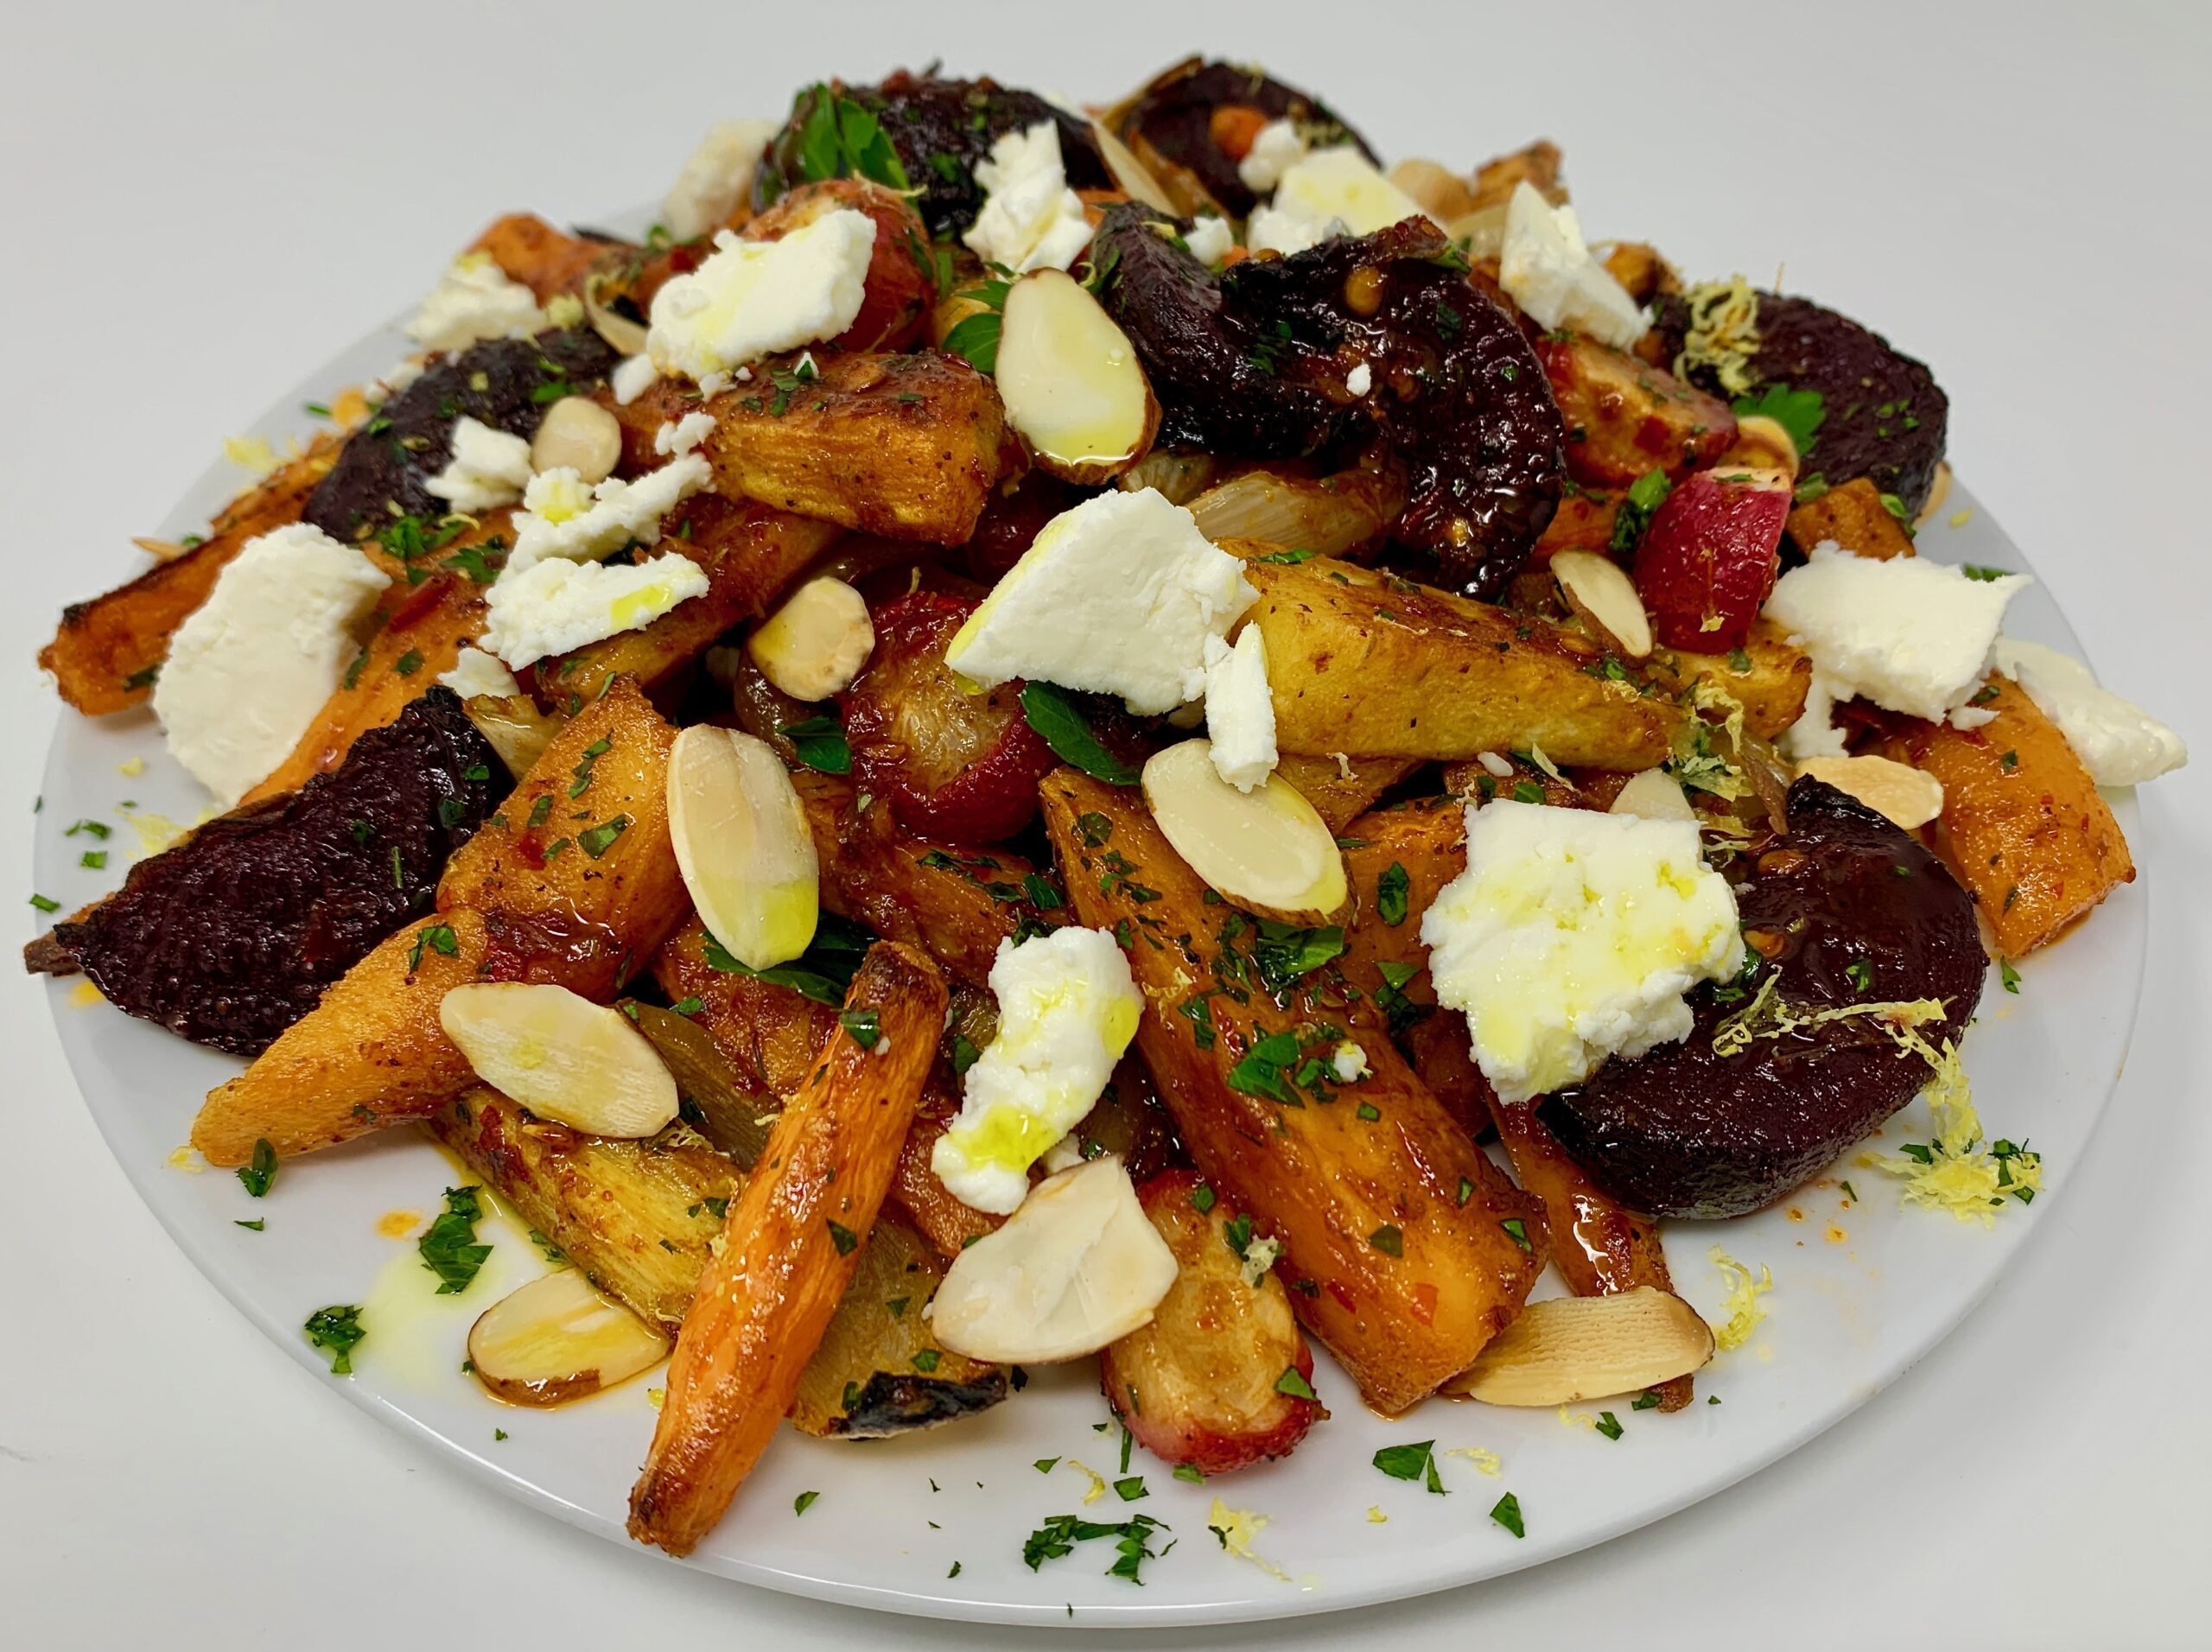 Roasted Root Veggie Salad